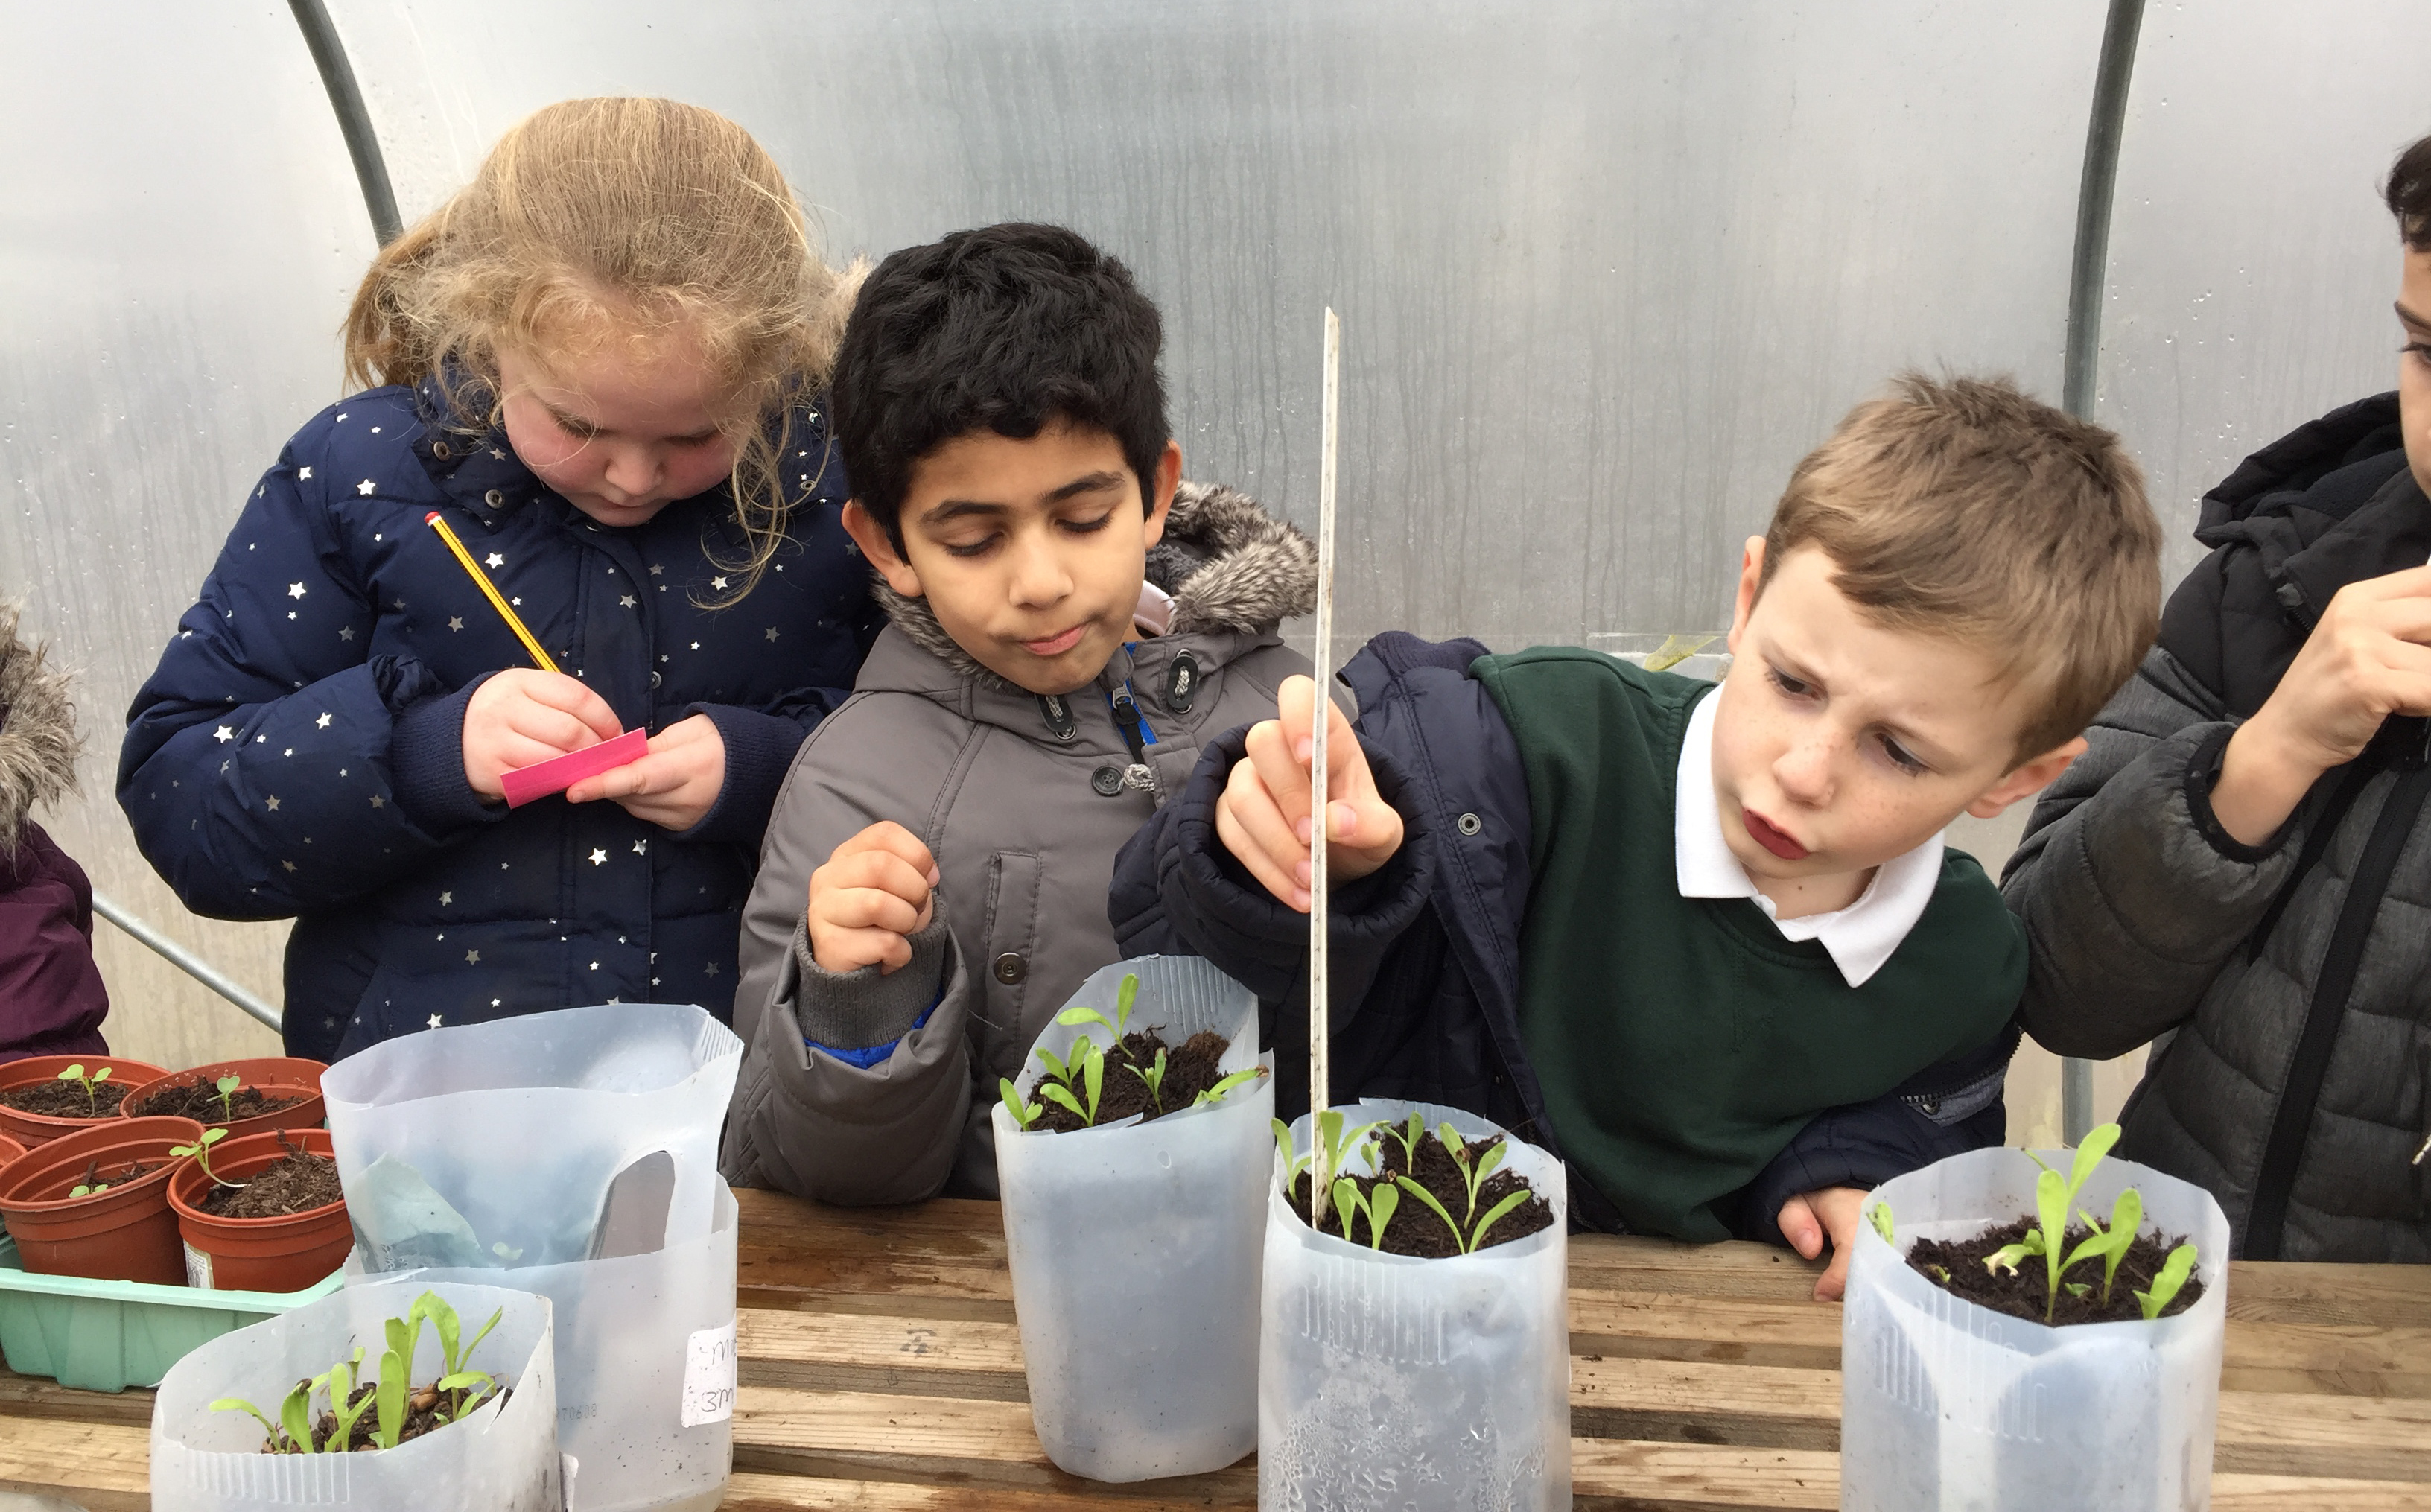 Using recycled plastic pots and containers is child's play (Wicor Primary School/PA)